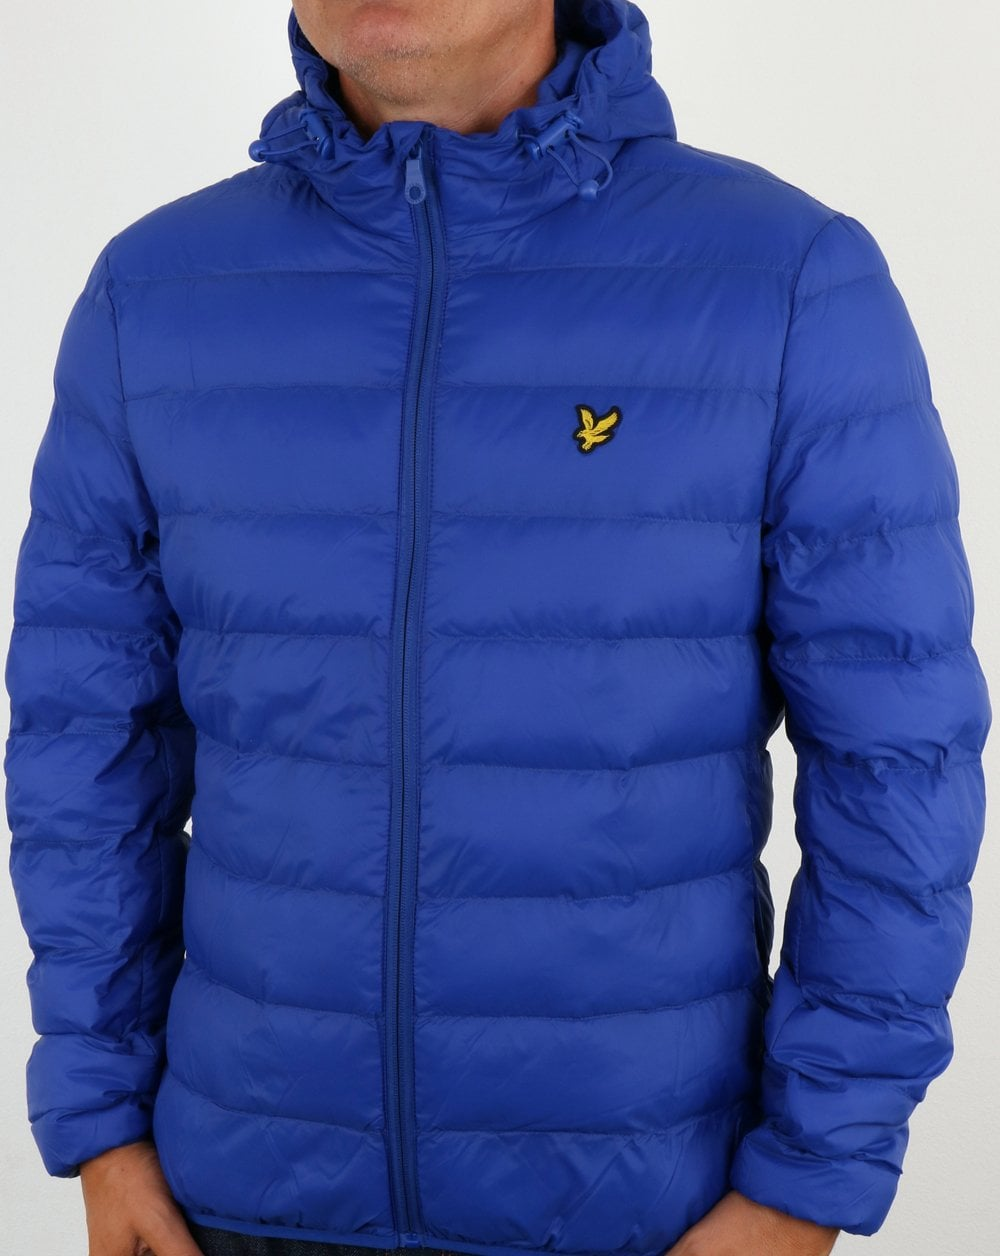 Lyle & Scott Puffer Jacket